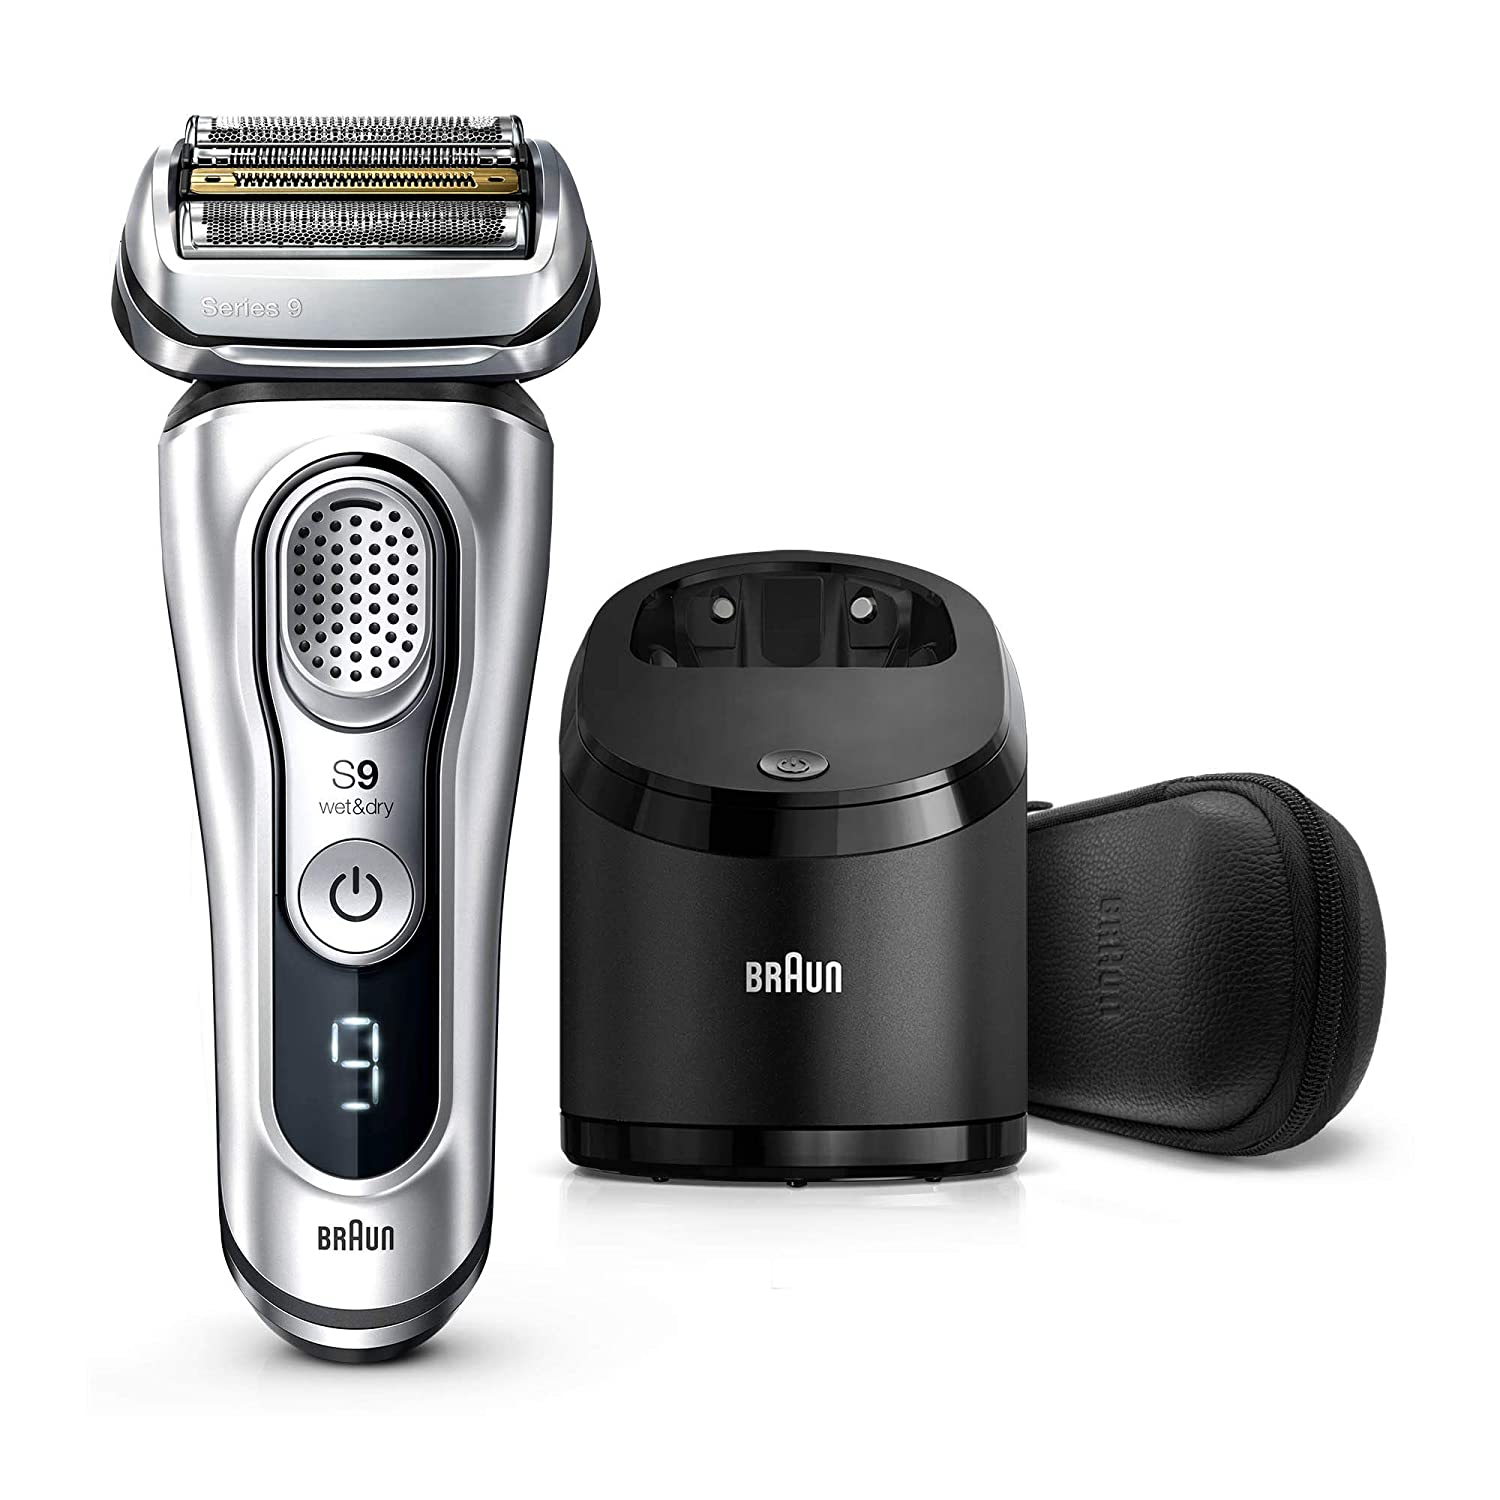 Braun Series 9 9390cc Latest Generation Electric Shaver, Rechargeable & Cordless Electric Razor for Men - Clean&Charge Station, Leather Travel Case